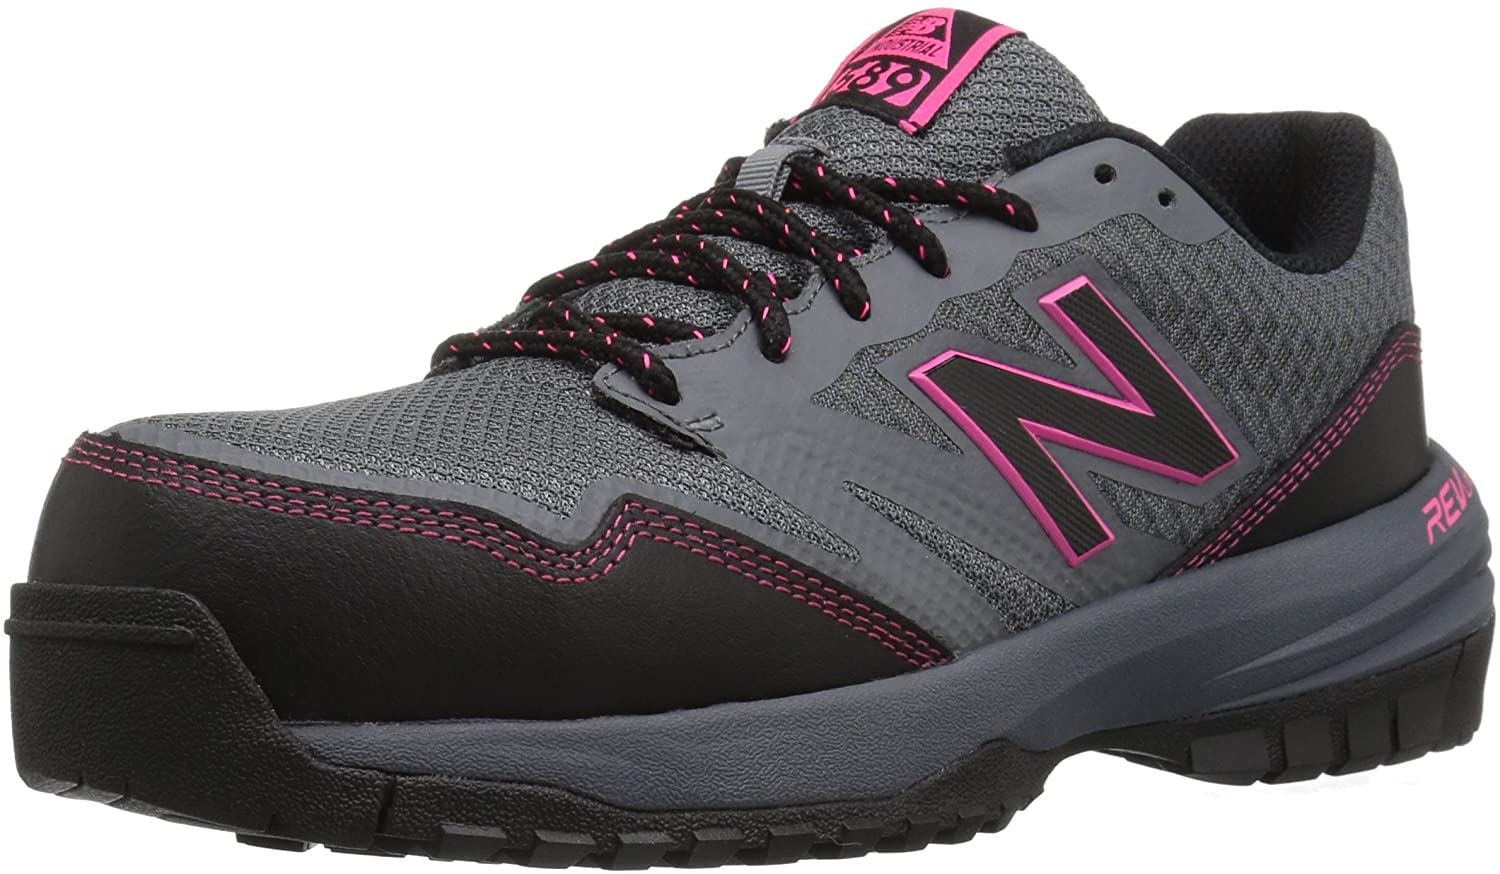 New Balance Overseas parallel import regular item Women's Composite Toe Shoe Industrial 589 Animer and price revision V1